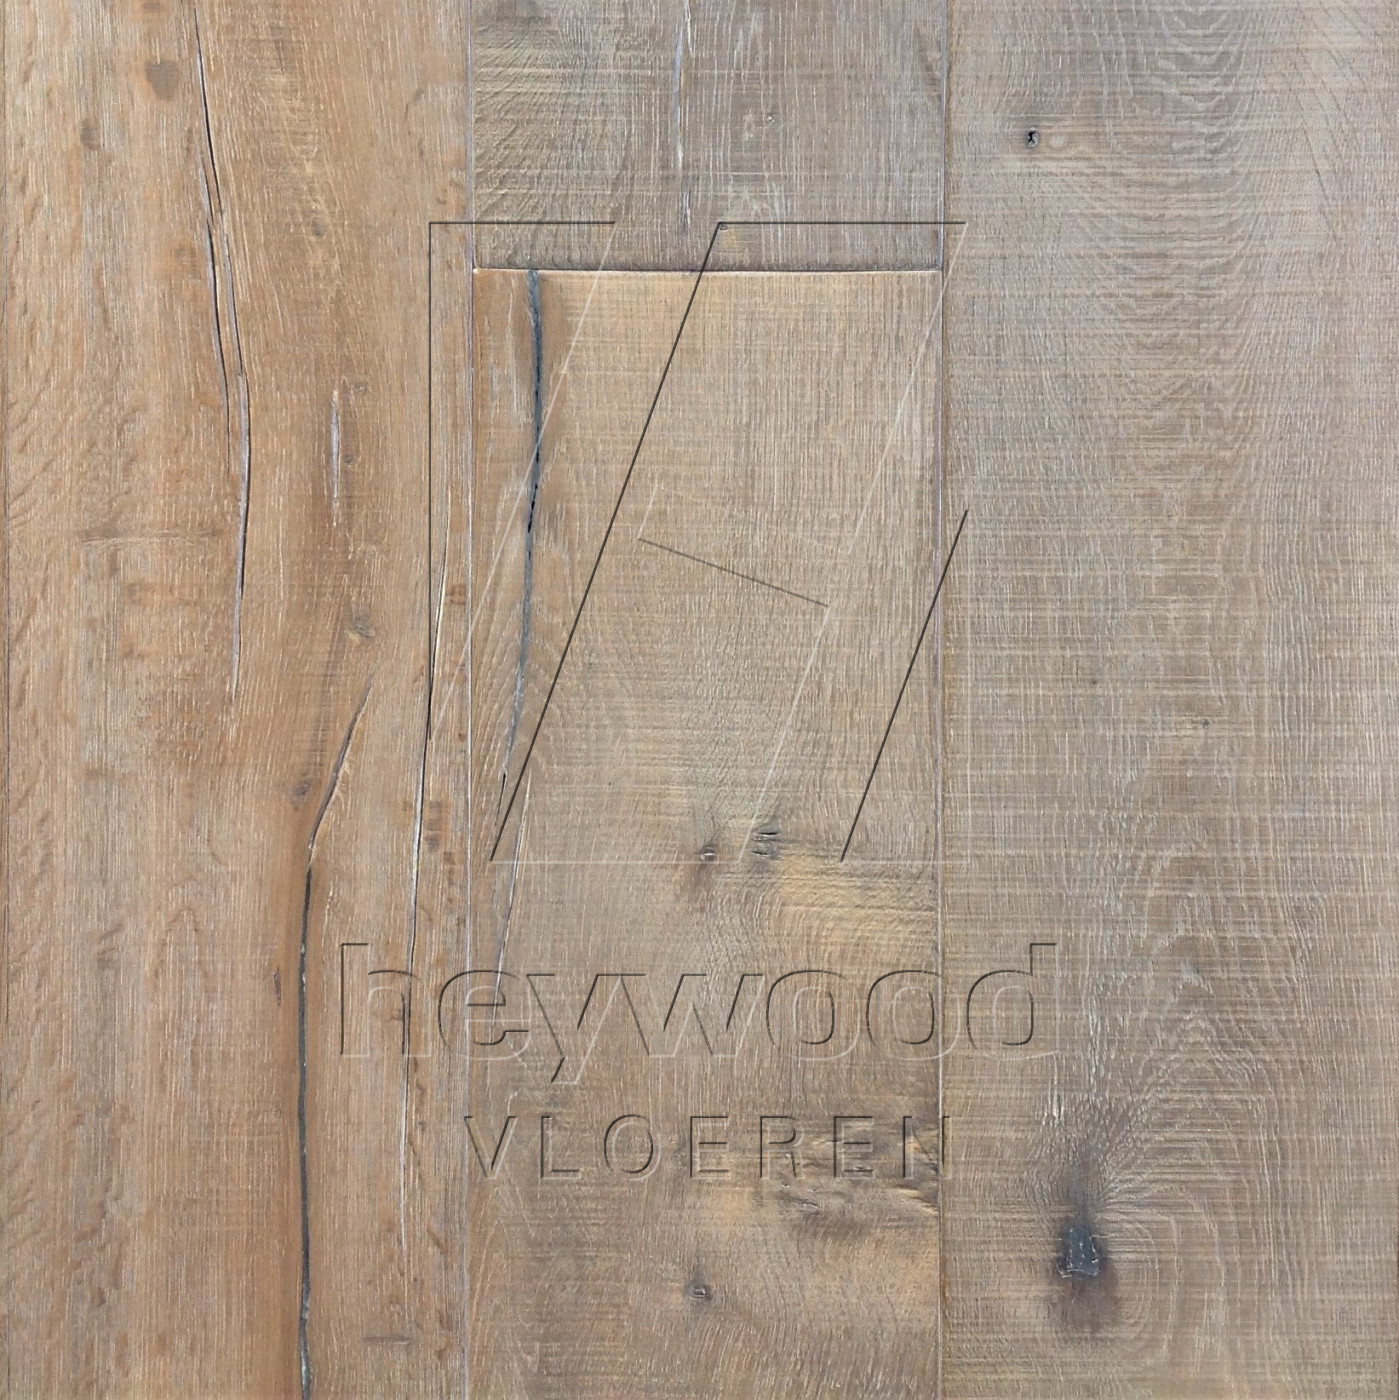 Knotting Hill Plank Gotland in Aged Knotting Hill Surface of Aged Hardwood Floors